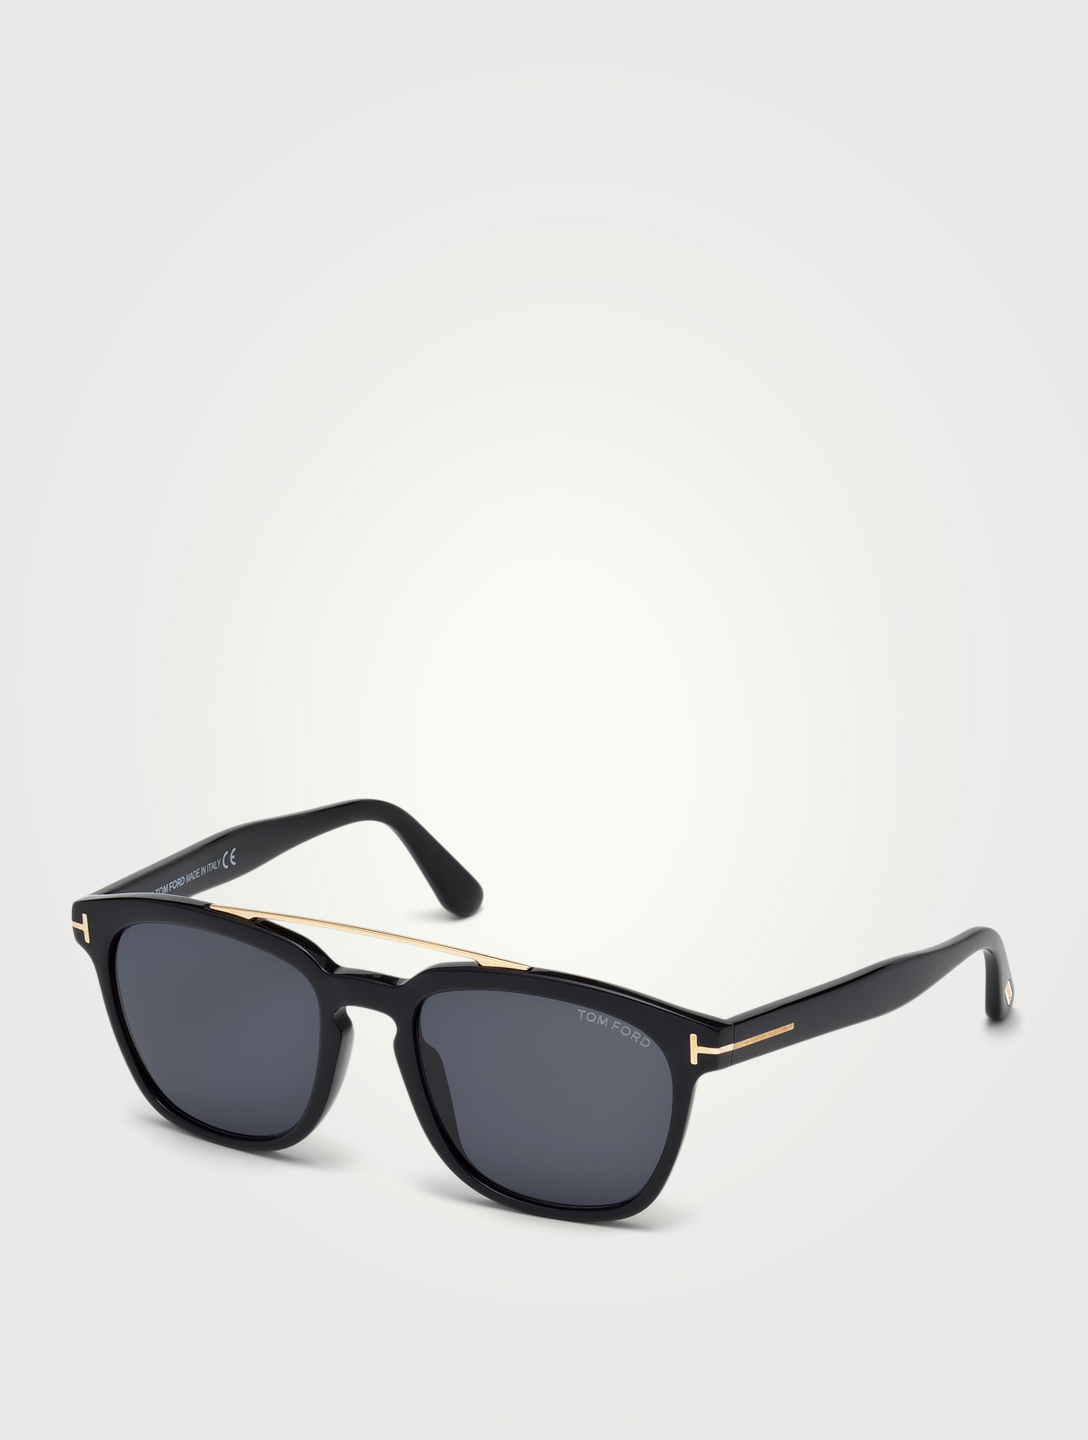 TOM FORD Holt Square Sunglasses Men's Black